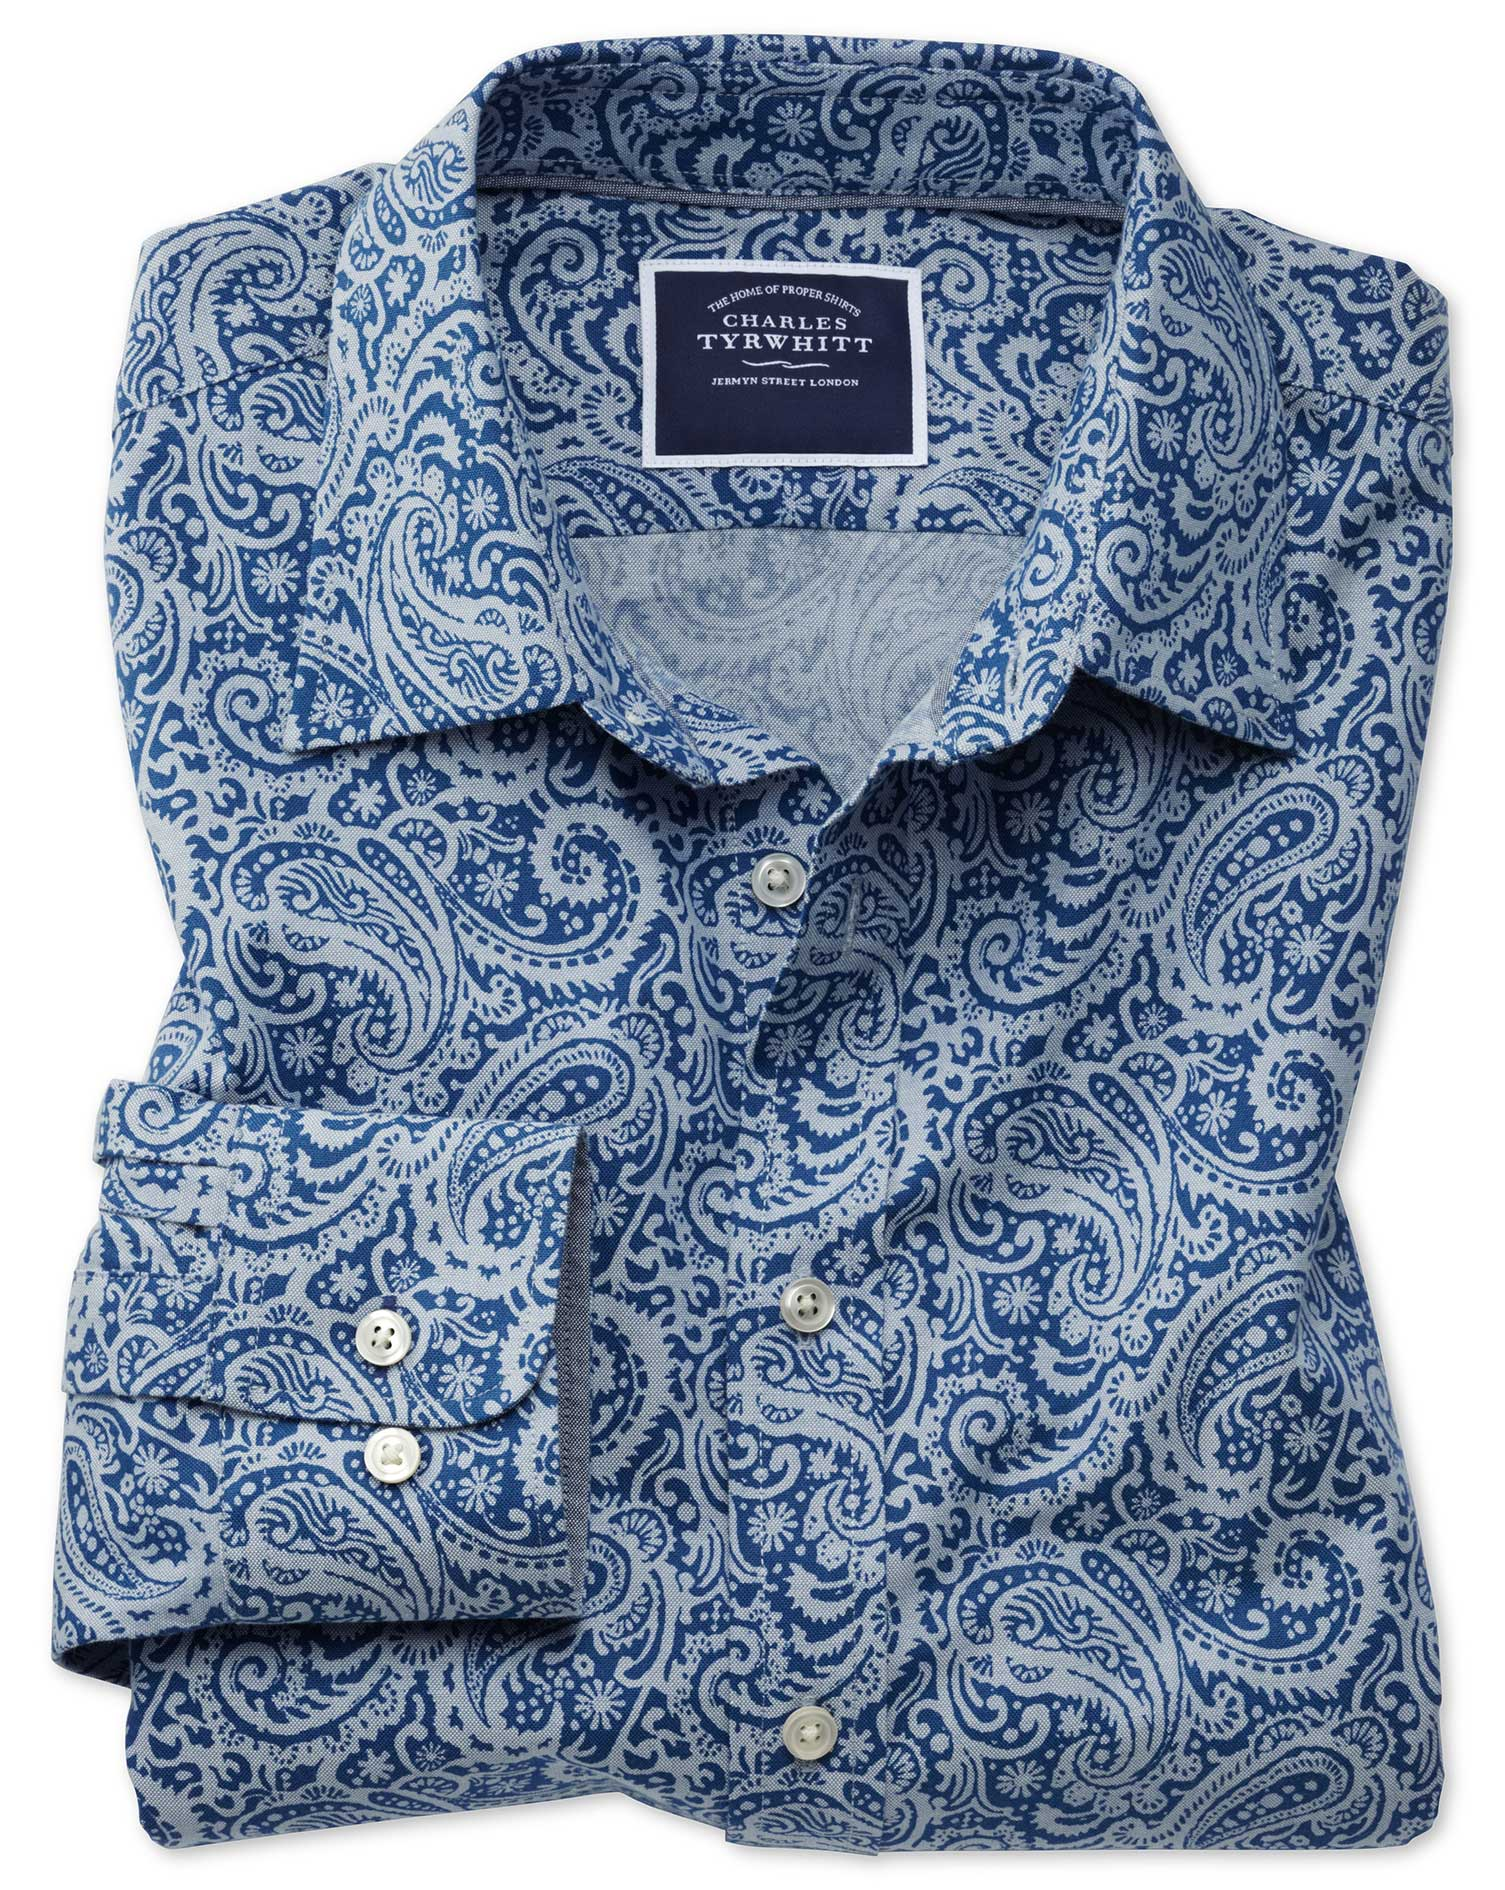 Classic Fit Non-Iron Chambray Royal Blue Paisley Print Cotton Shirt Single Cuff Size XL by Charles T